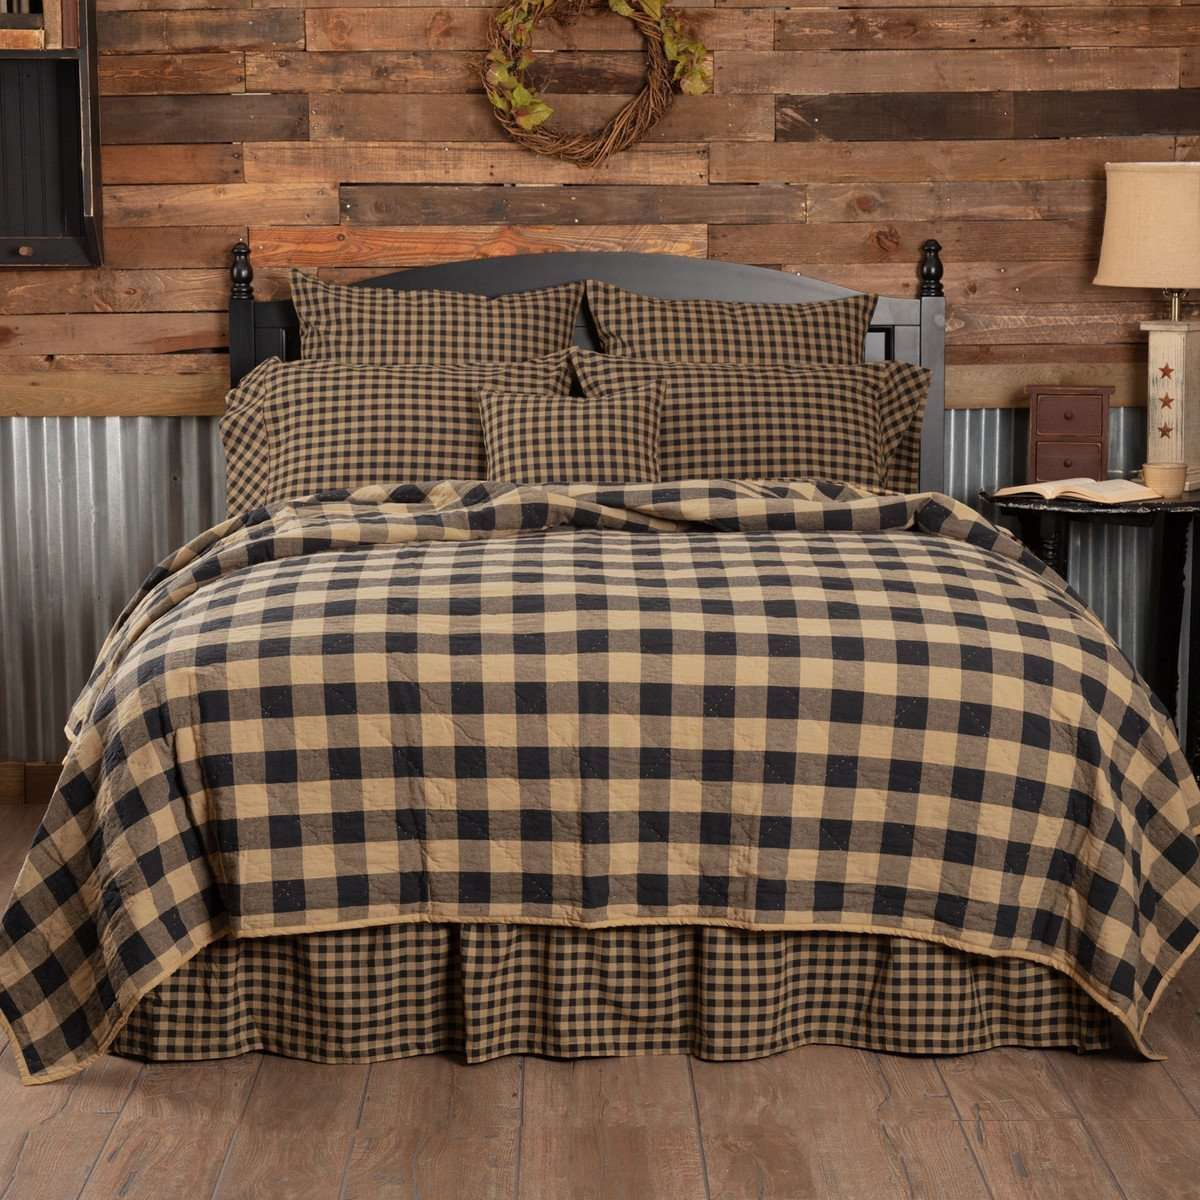 COUNTRY PRIMITIVE FARMHOUSE BURGUNDY CHECK QUILT COLLECTION VHC BRANDS